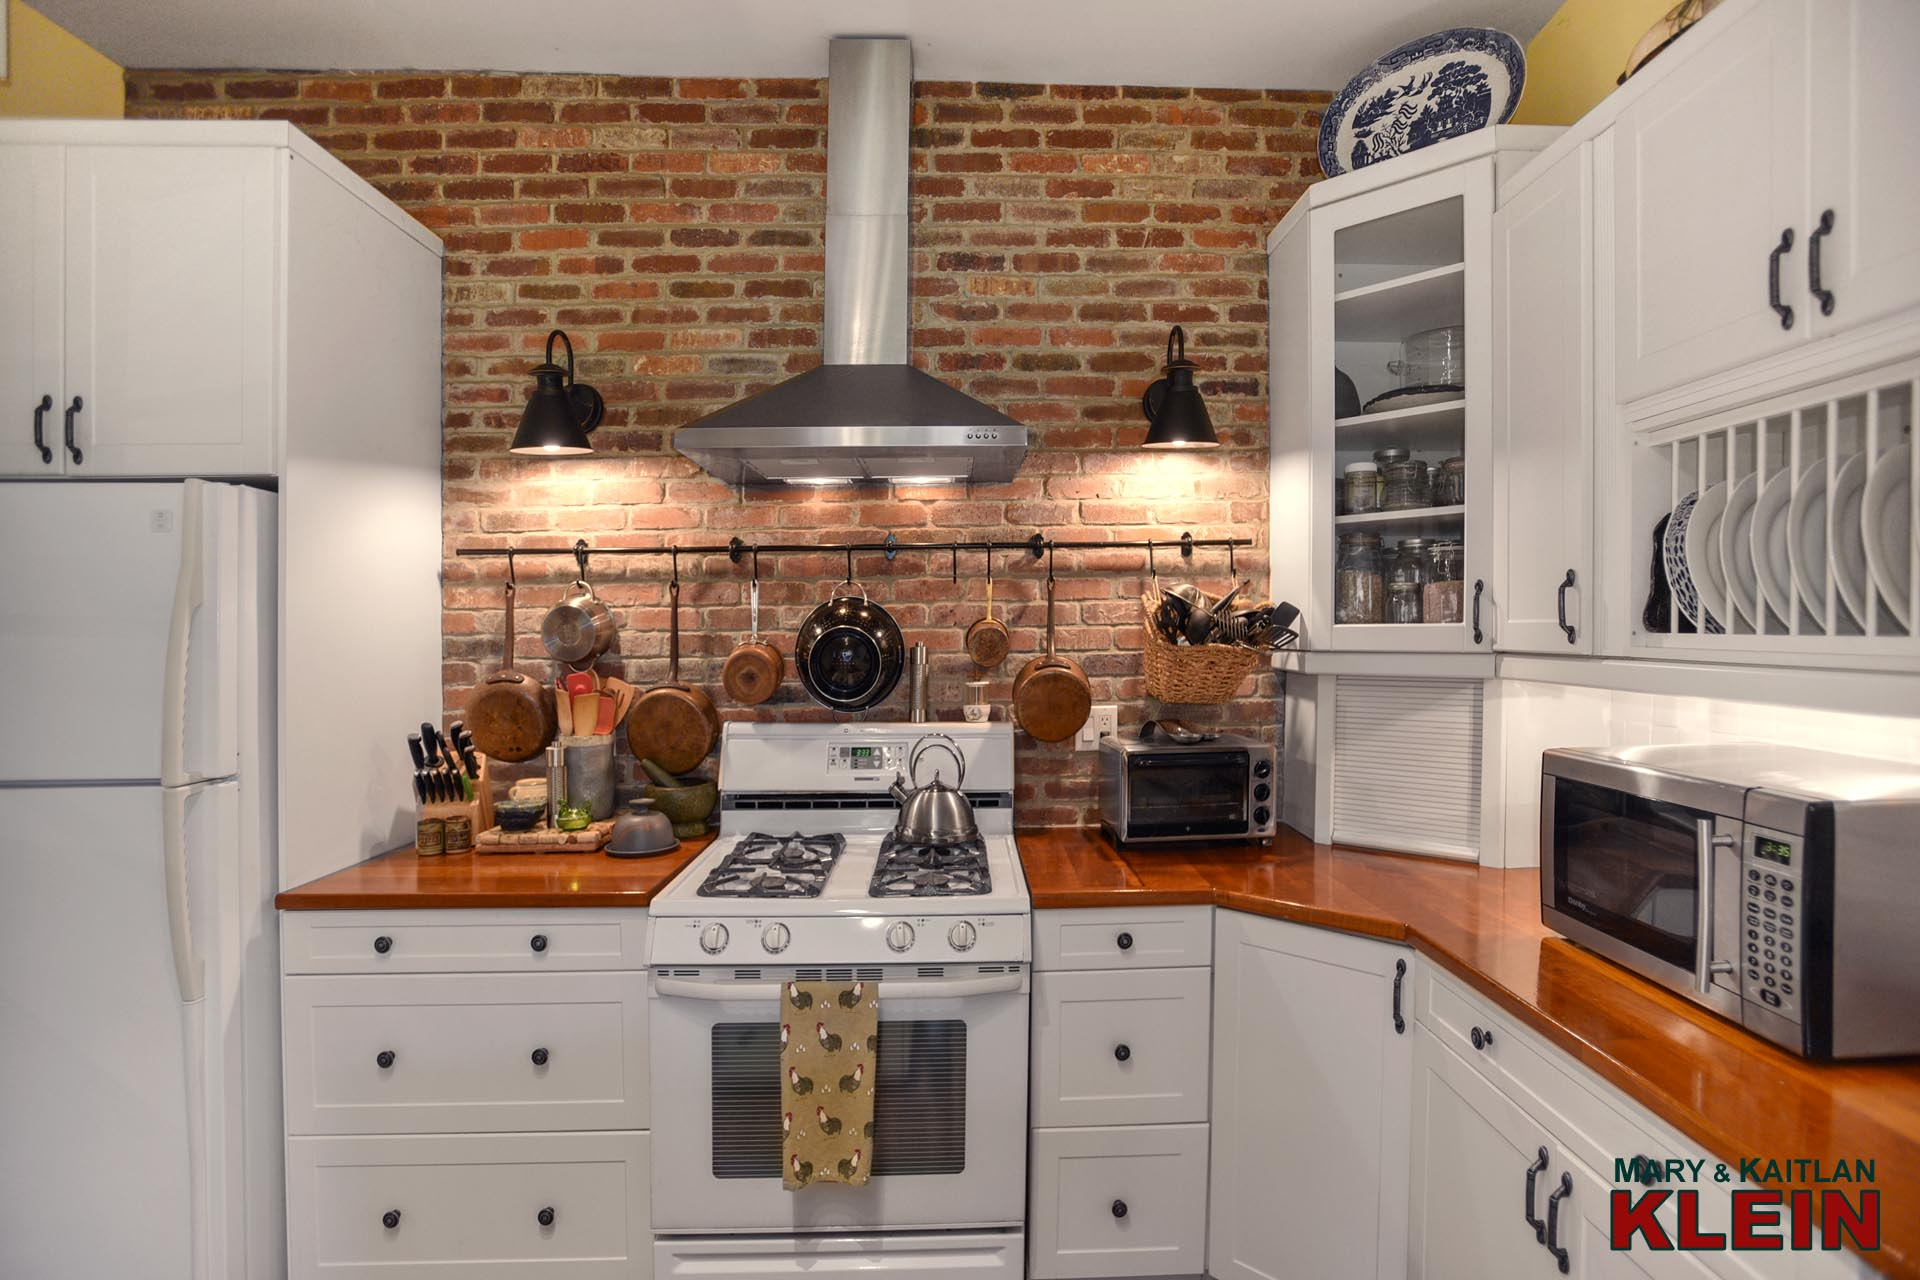 Kitchen, exposed brick wall